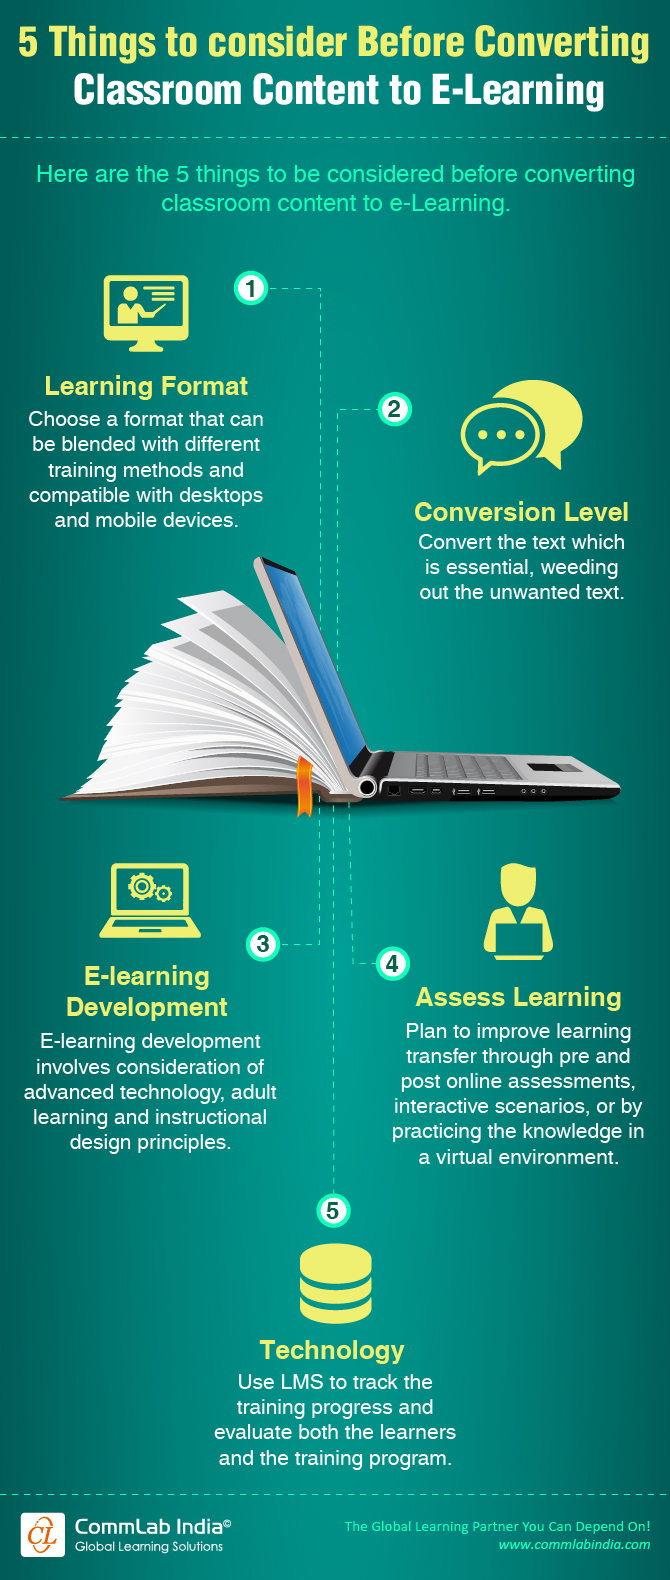 5 Things to Consider Before Converting Classroom Content to E-learning [Infographic]